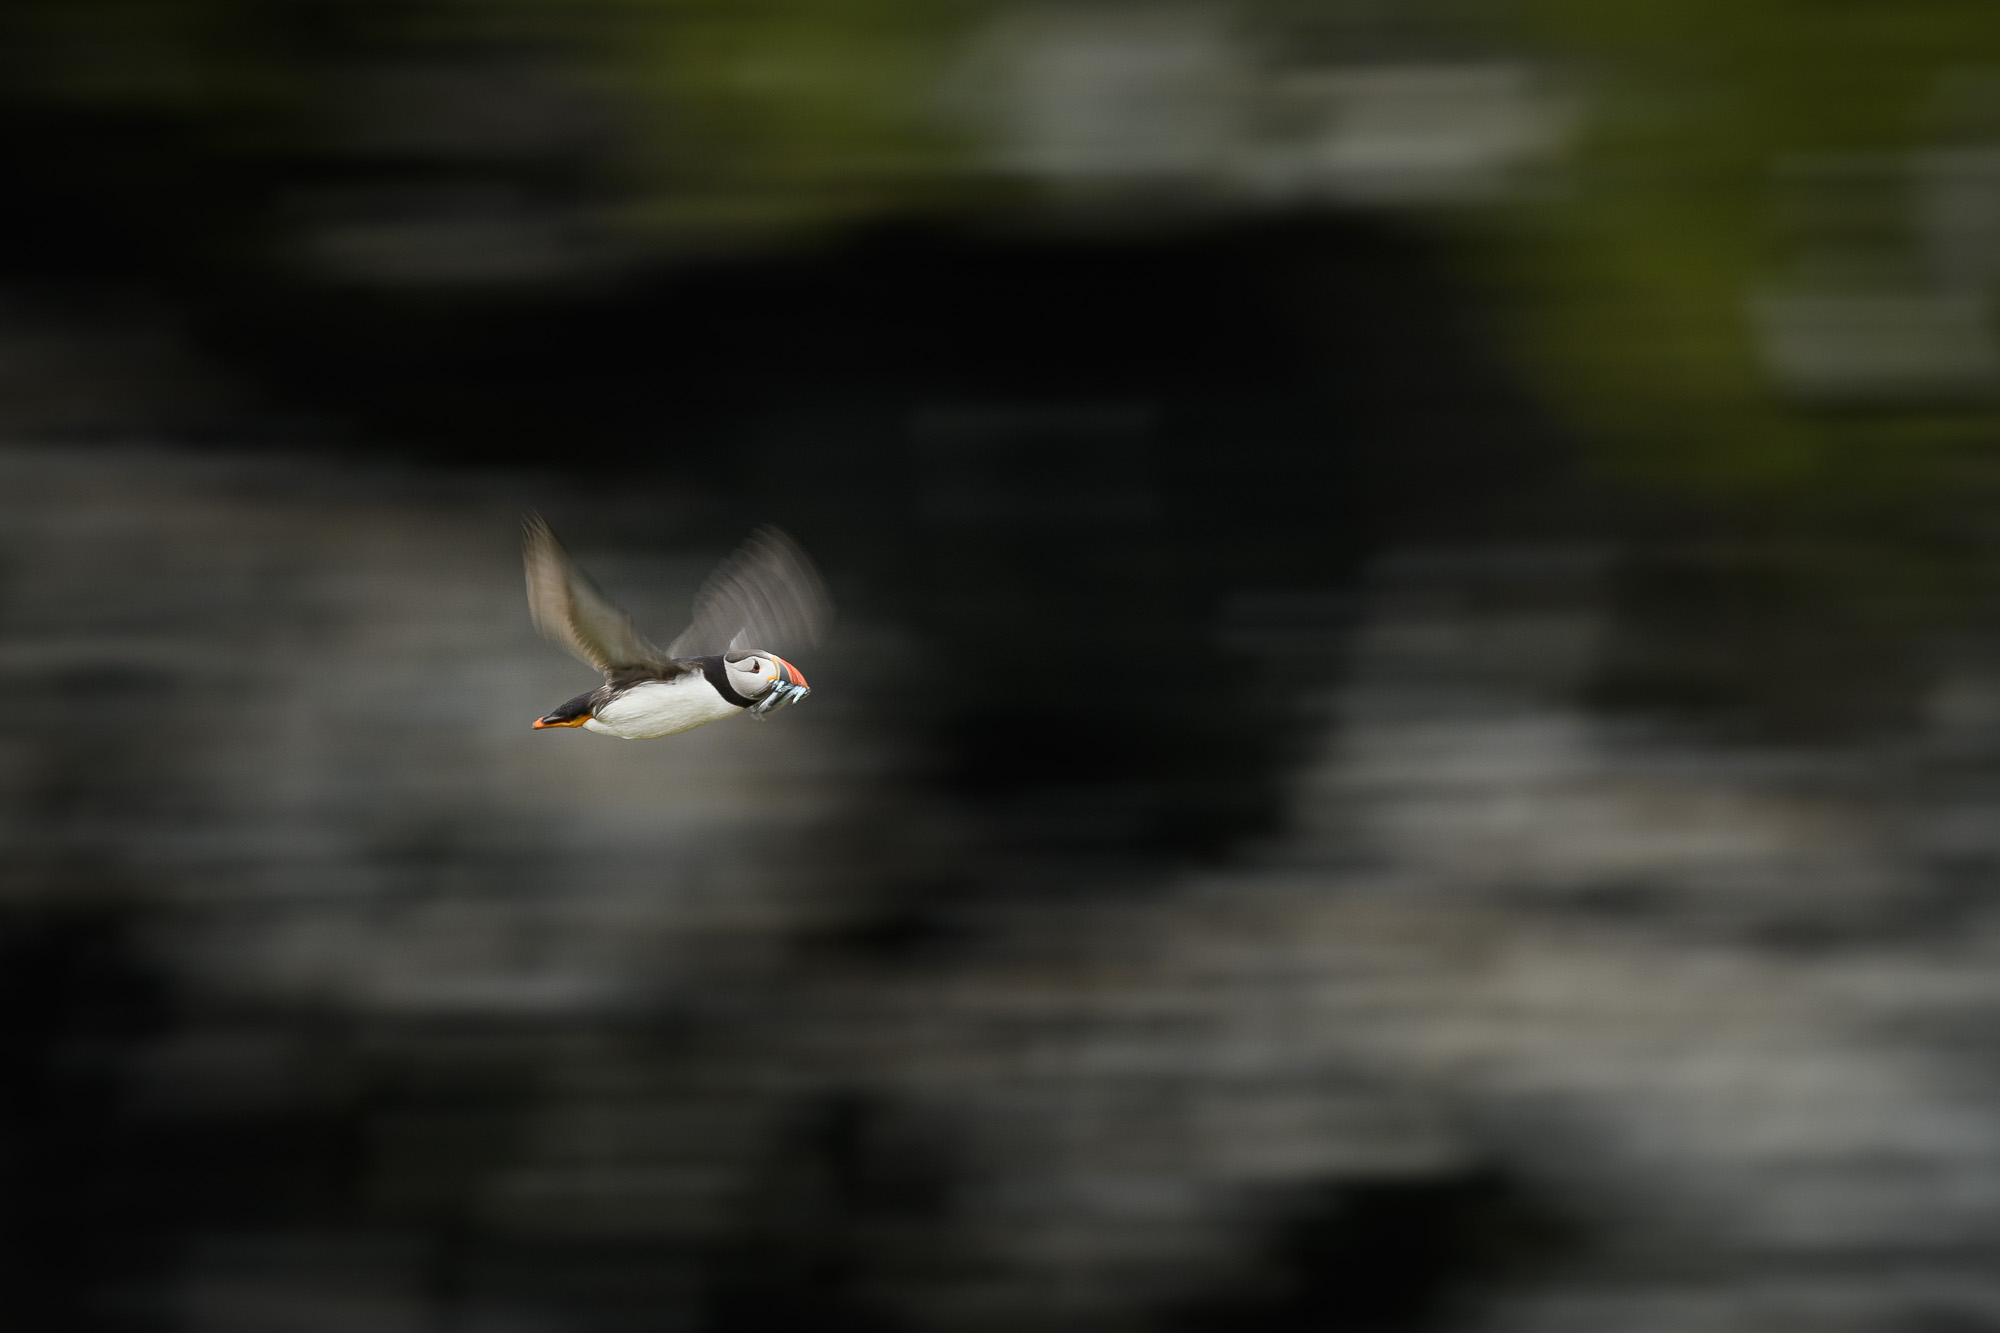 Small bird, big cliffs. Puffins can fly at up to 55mph, and their wings can beat 400 times per min. I wanted to convey this by using the same kind of slow shutter speed panning I use a lot with aircraft. 1/60sec exposure shows how this bird is moving in its environment. Worth clicking on this picture to see it bigger.